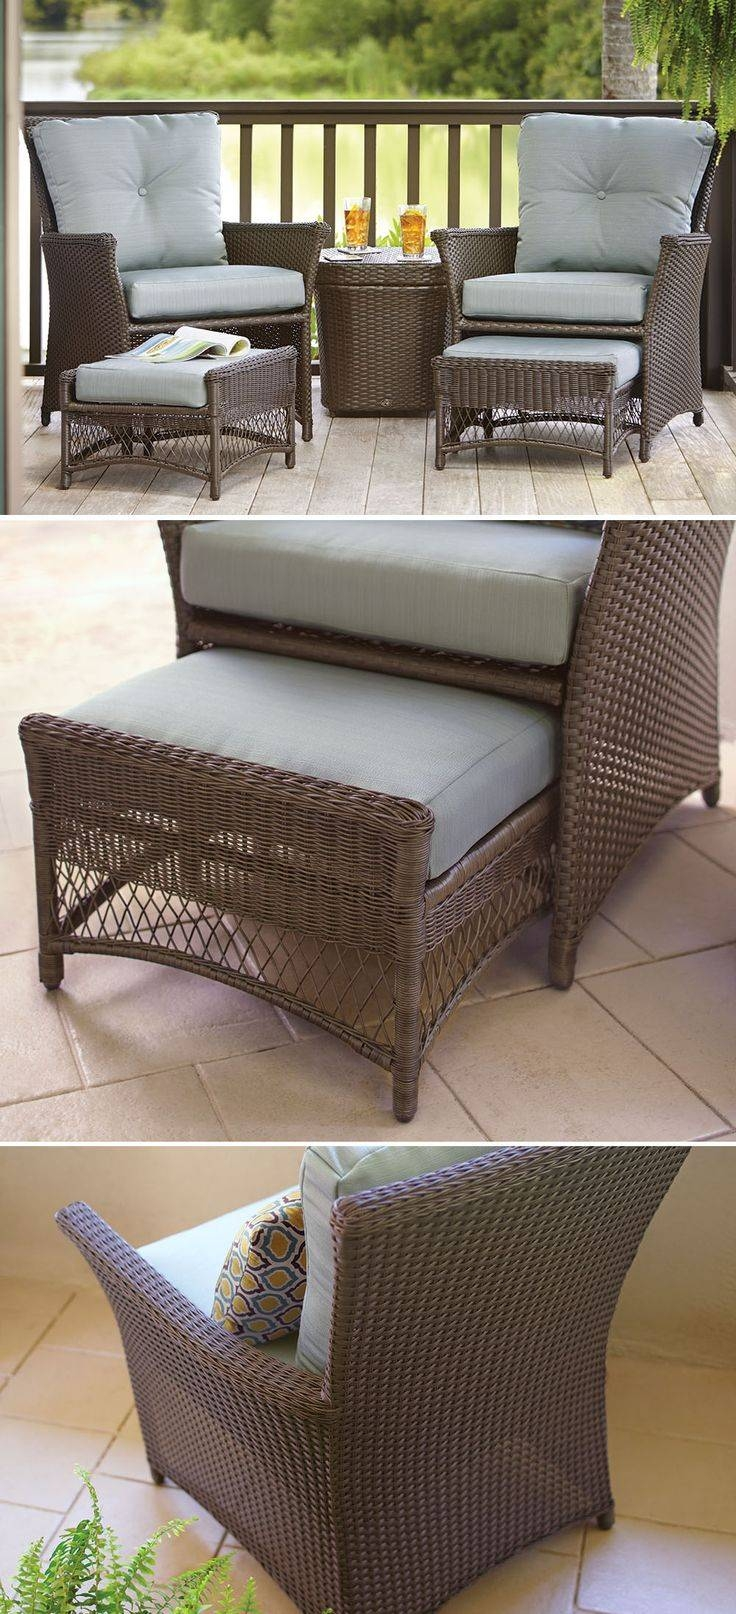 Best 25+ Deck Furniture Ideas On Pinterest | Outdoor Furniture throughout Patio Sofa Tables (Image 7 of 30)